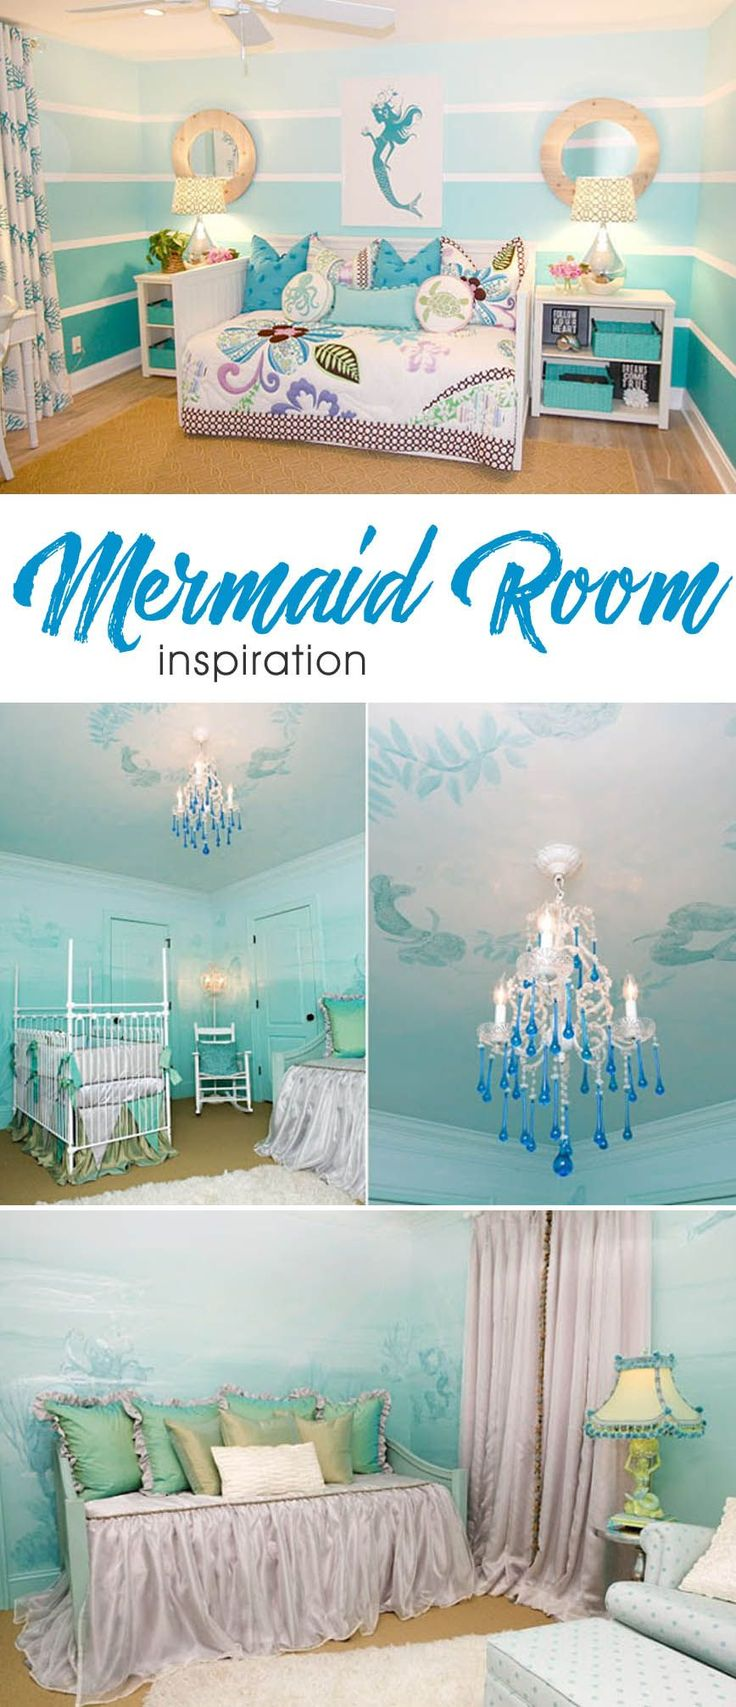 Mermaid-inspired kids' bedroom design